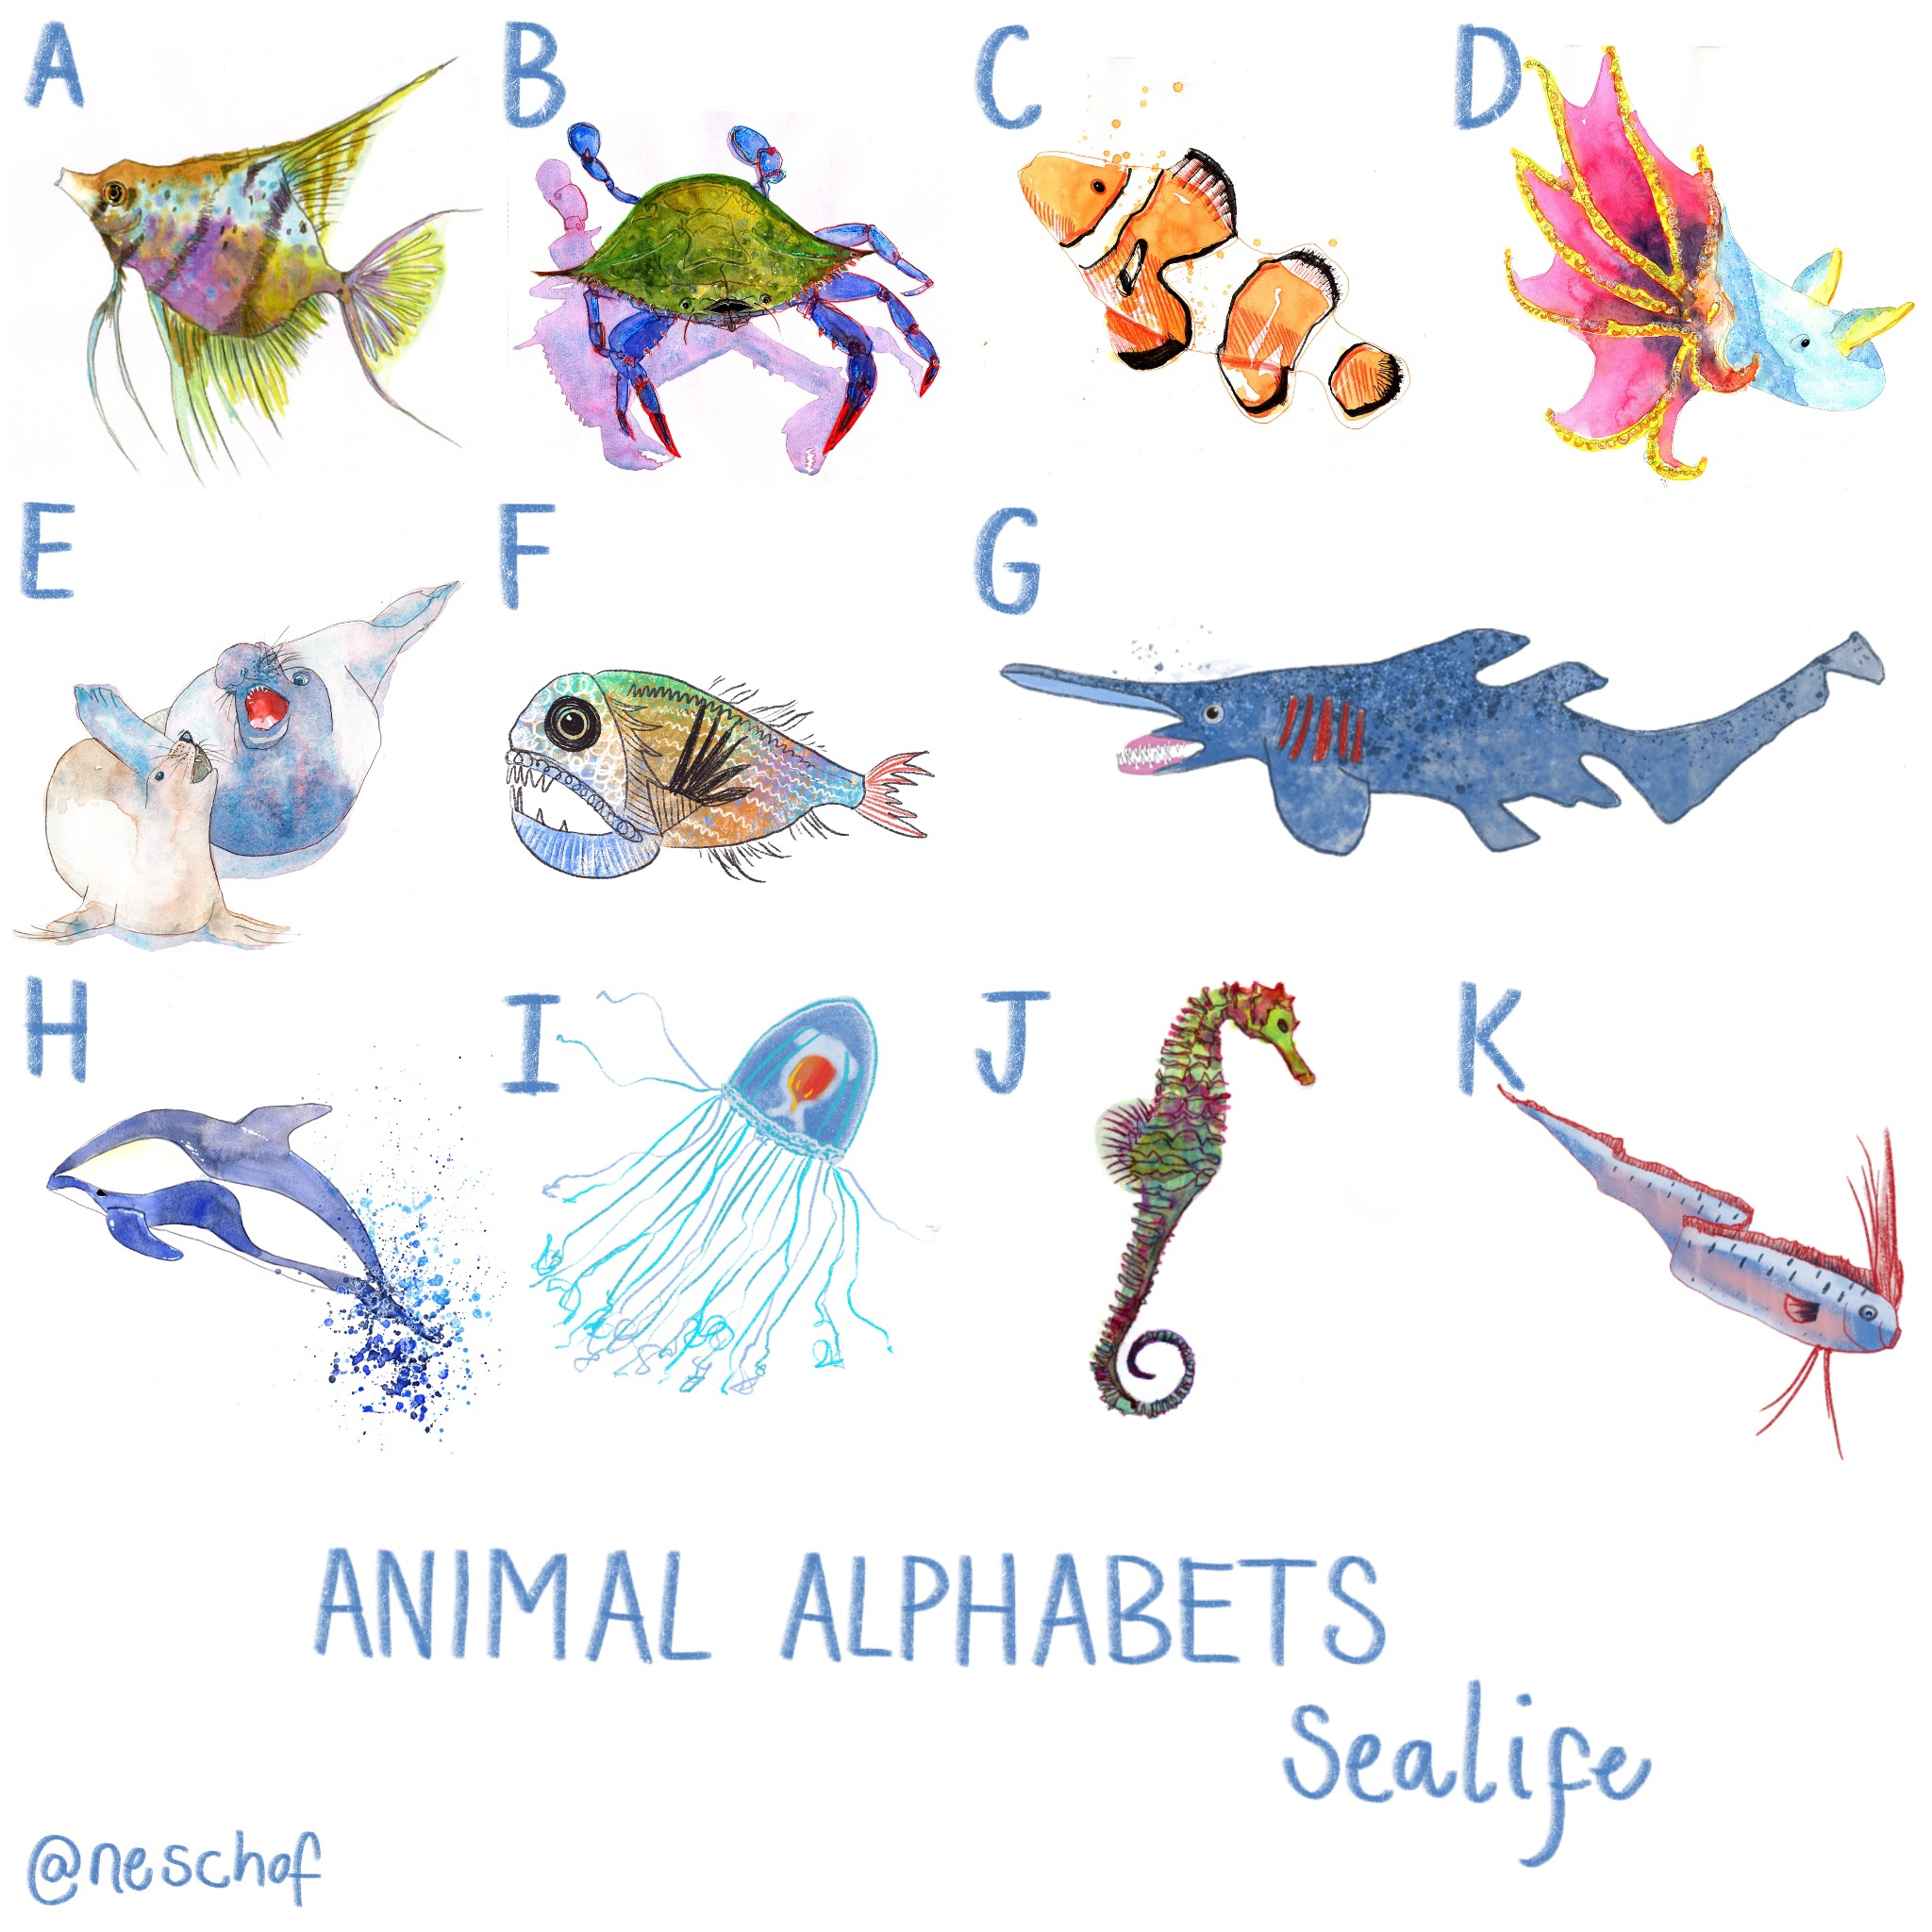 A to K animal alphabets